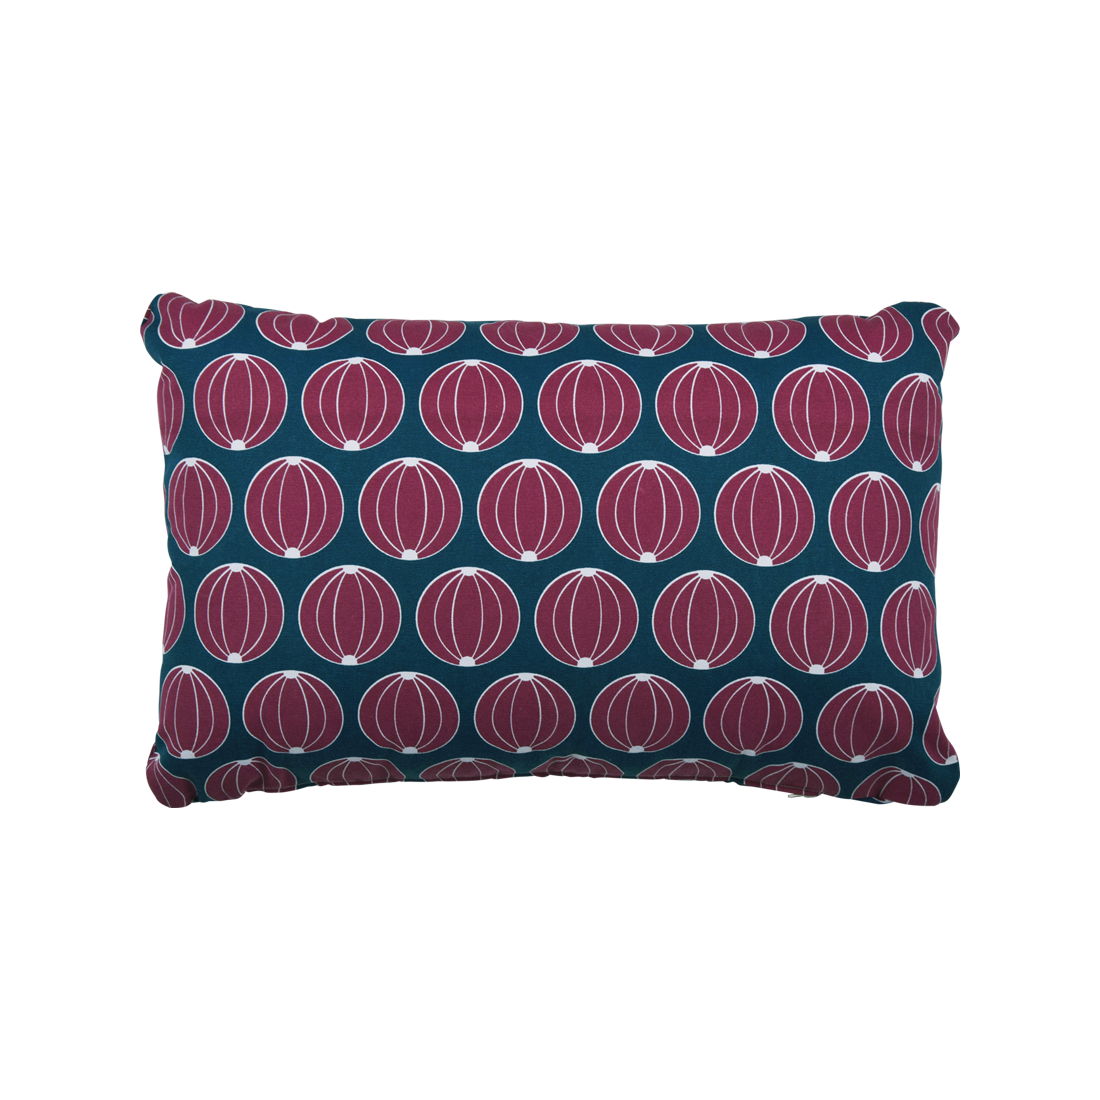 FERMOB Melons Cushions 68x44cm (Set of 2)